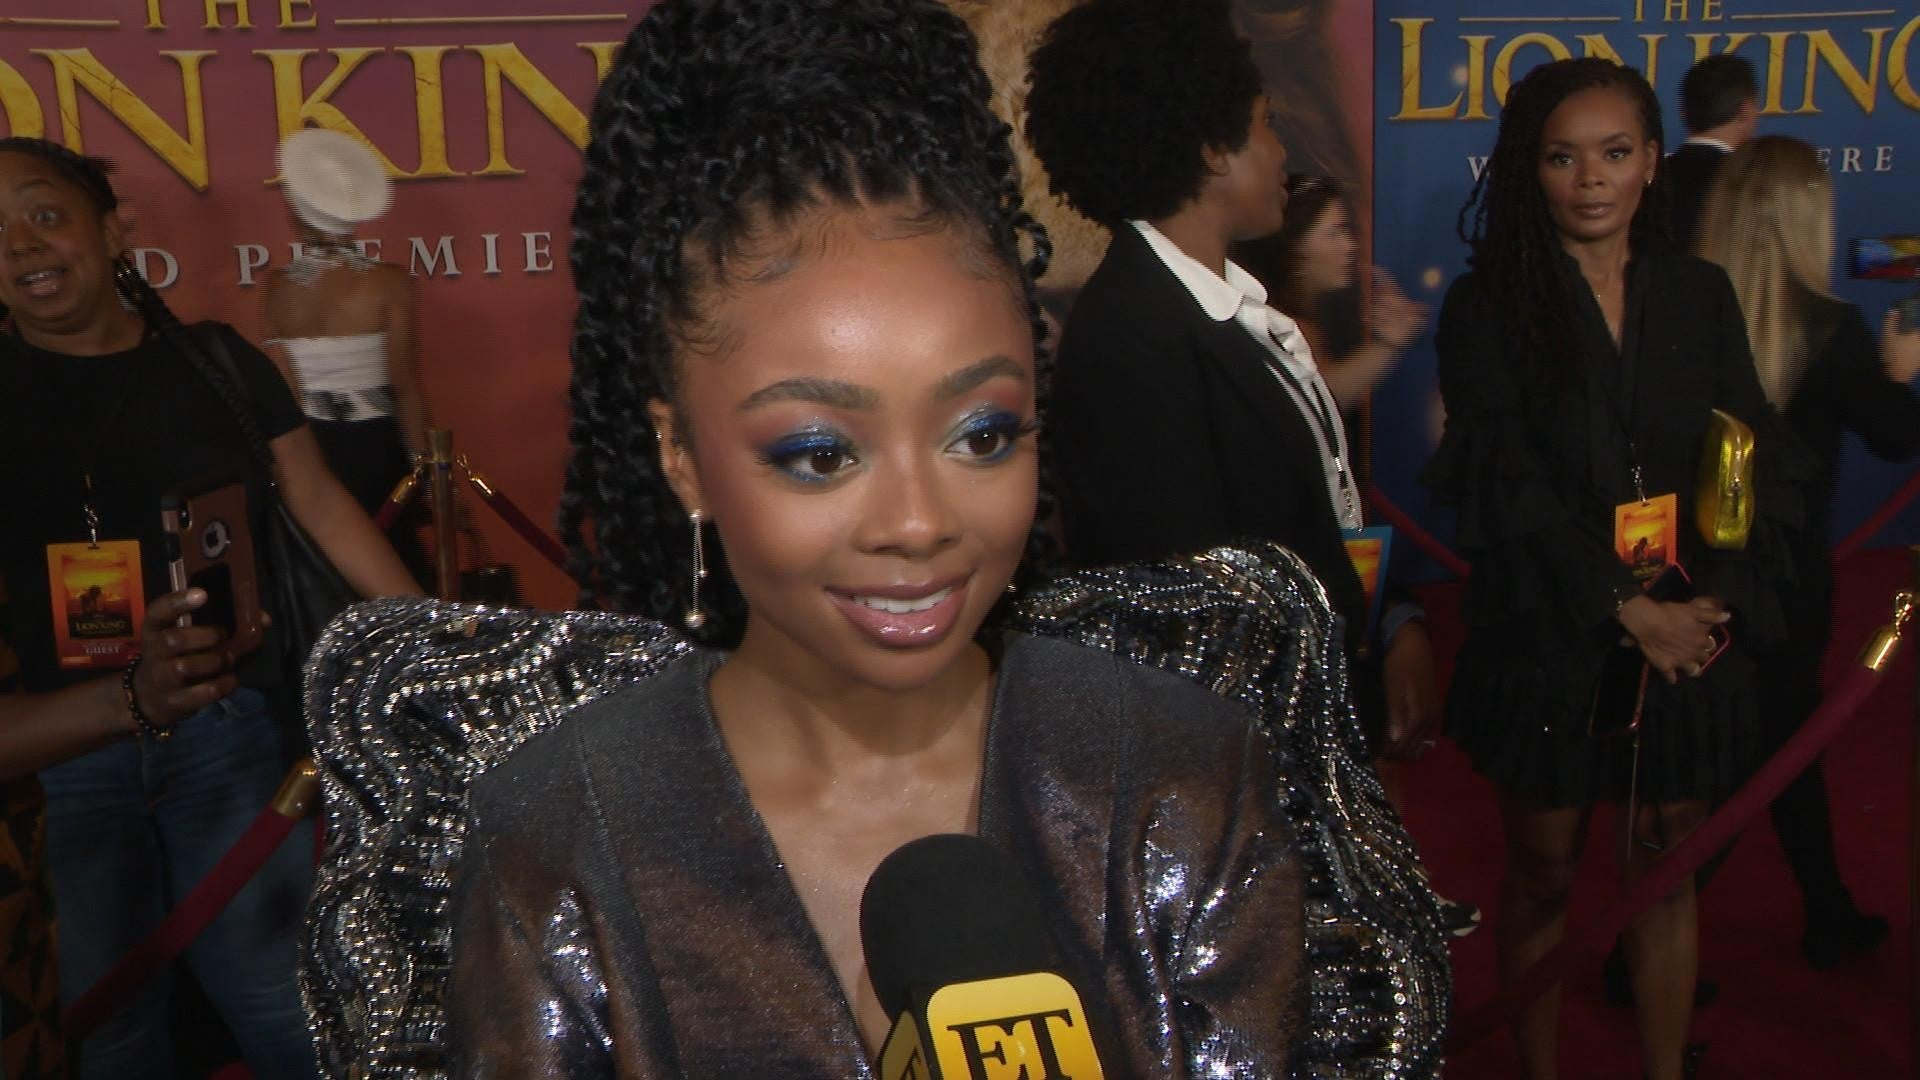 Cameron Boyce S Jessie Co Star Skai Jackson Tears Up Over His Death He Was Like A Brother Exclusive Entertainment Tonight